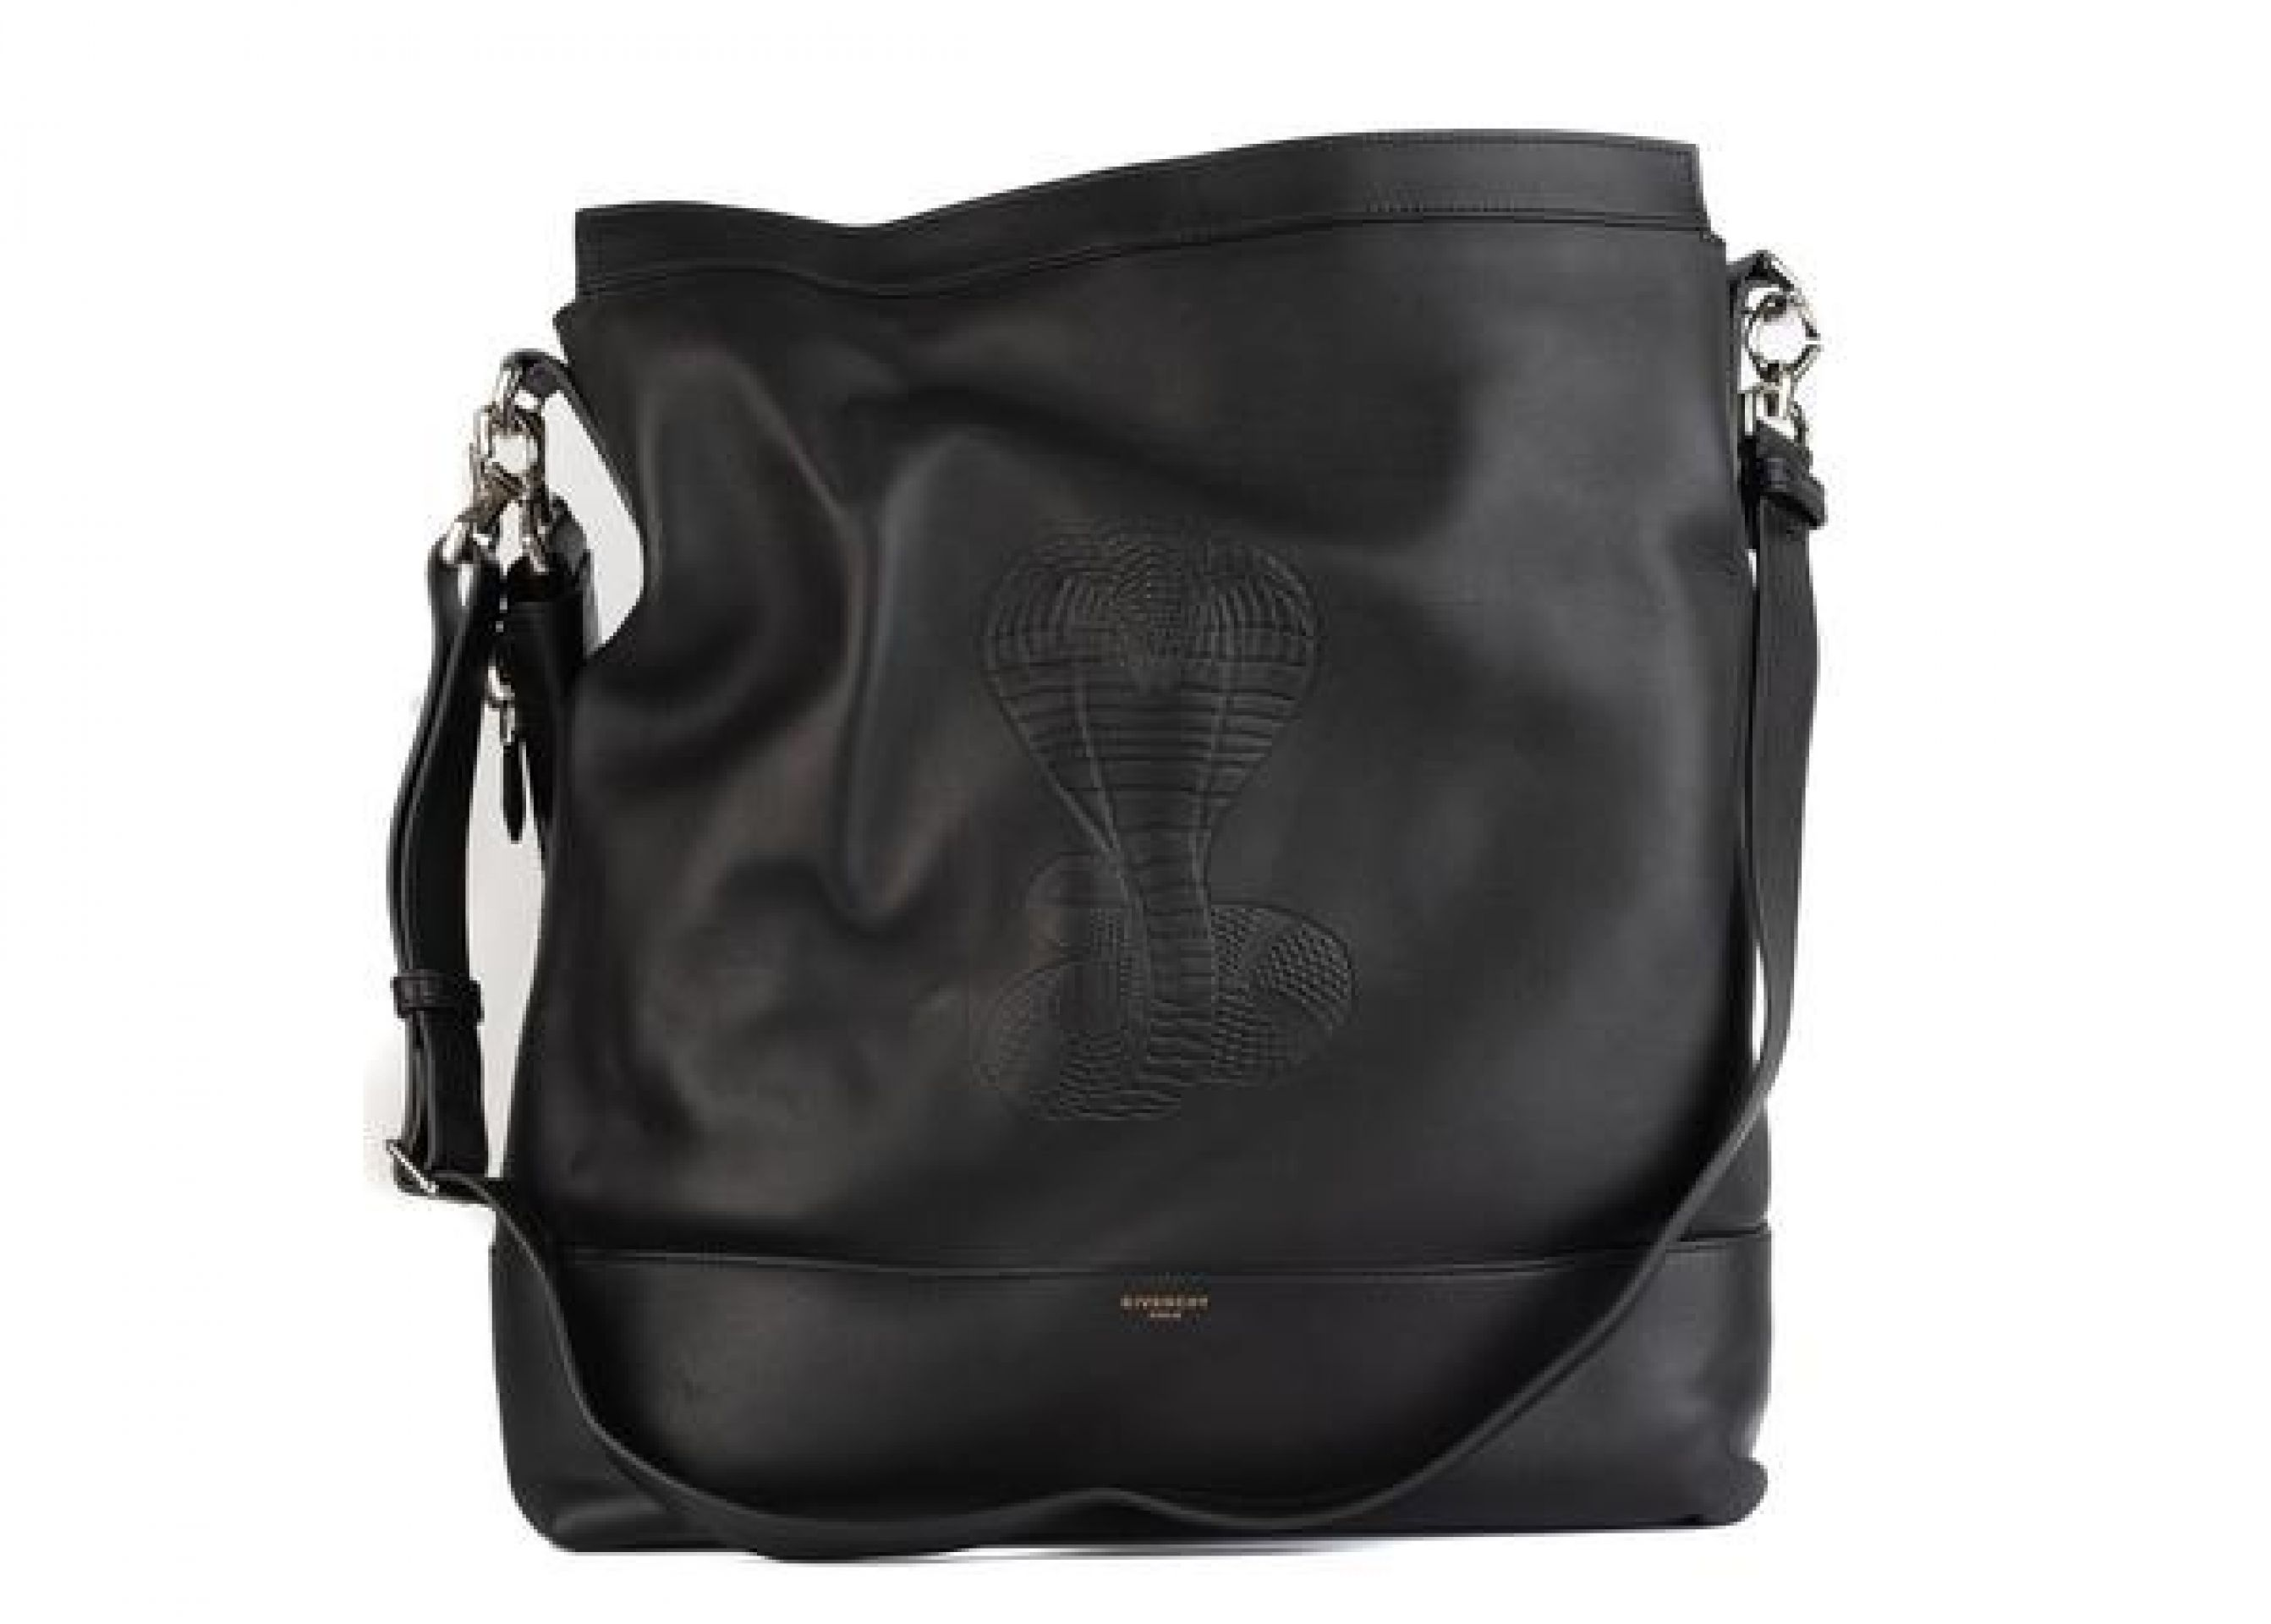 GIVENCHY WOMEN'S BLACK LEATHER COBRA SNAKE EMBOSSED SHOULDER BAG